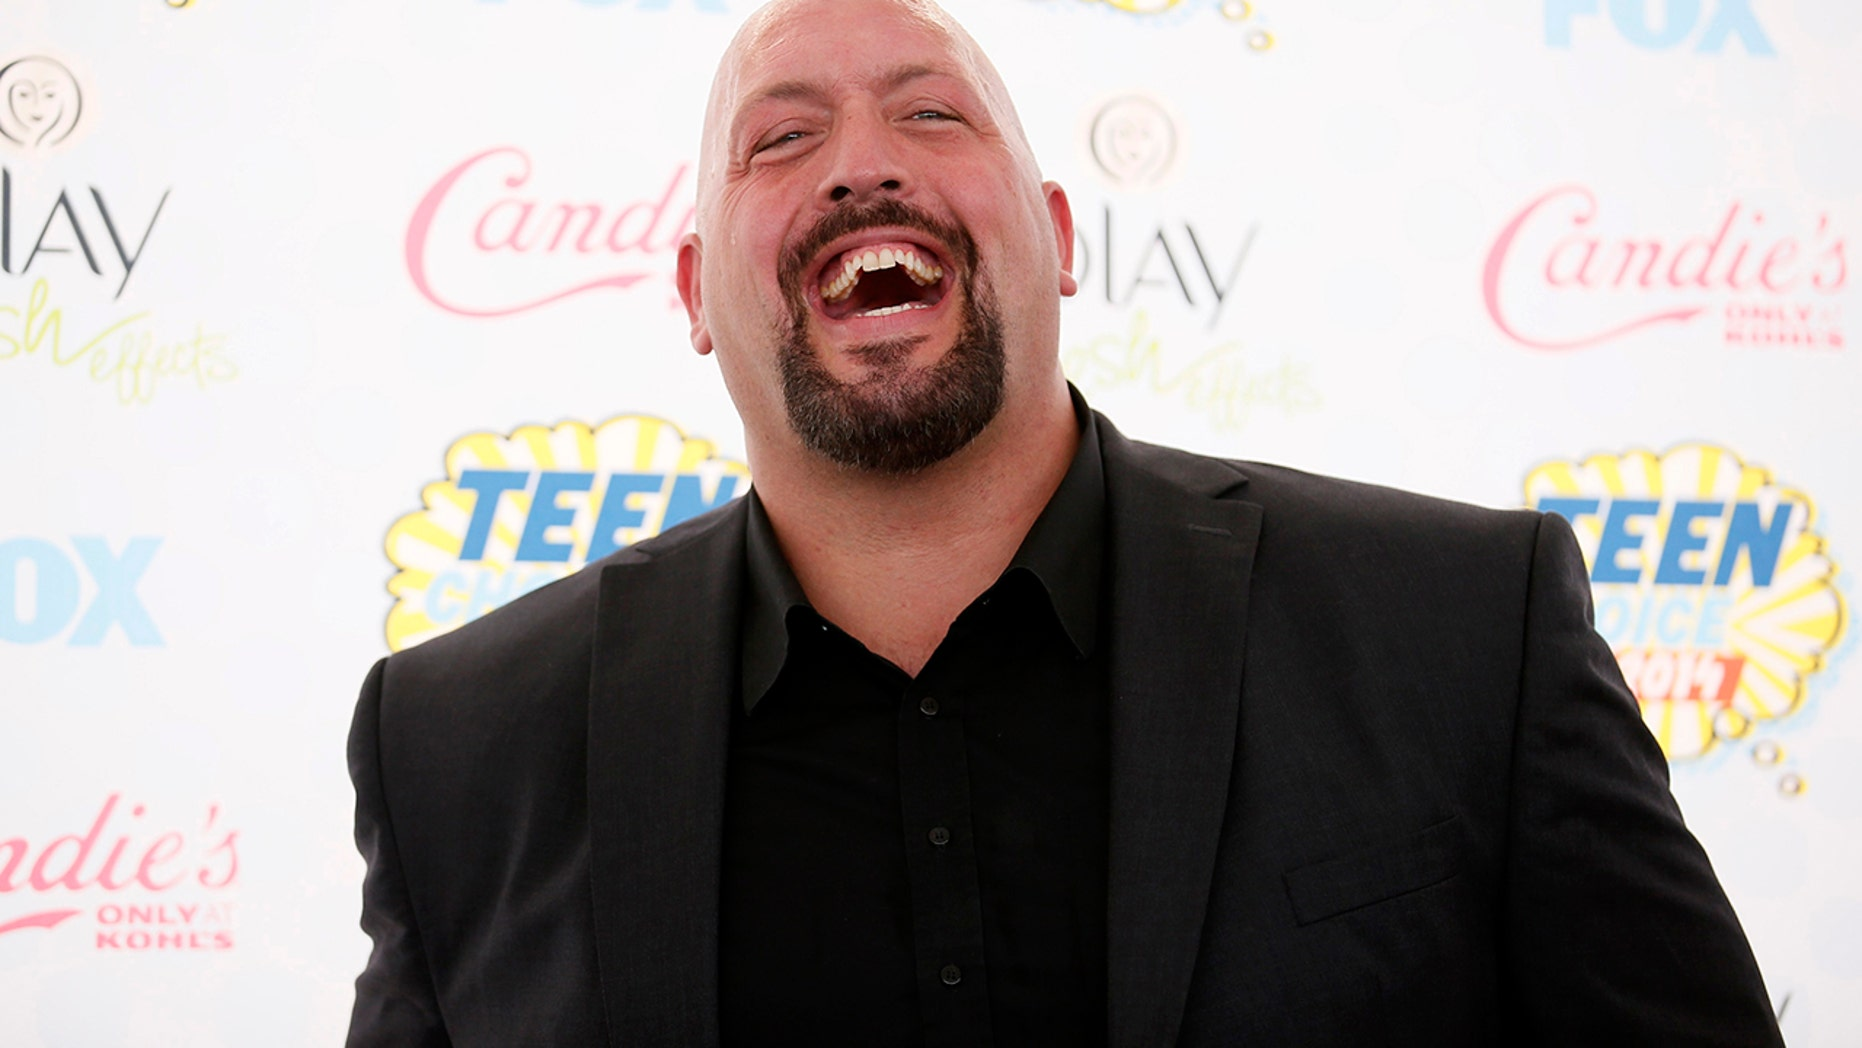 WWE superstar Big Show arrives at the Teen Choice Awards 2014 in Los Angeles, California August 10, 2014.